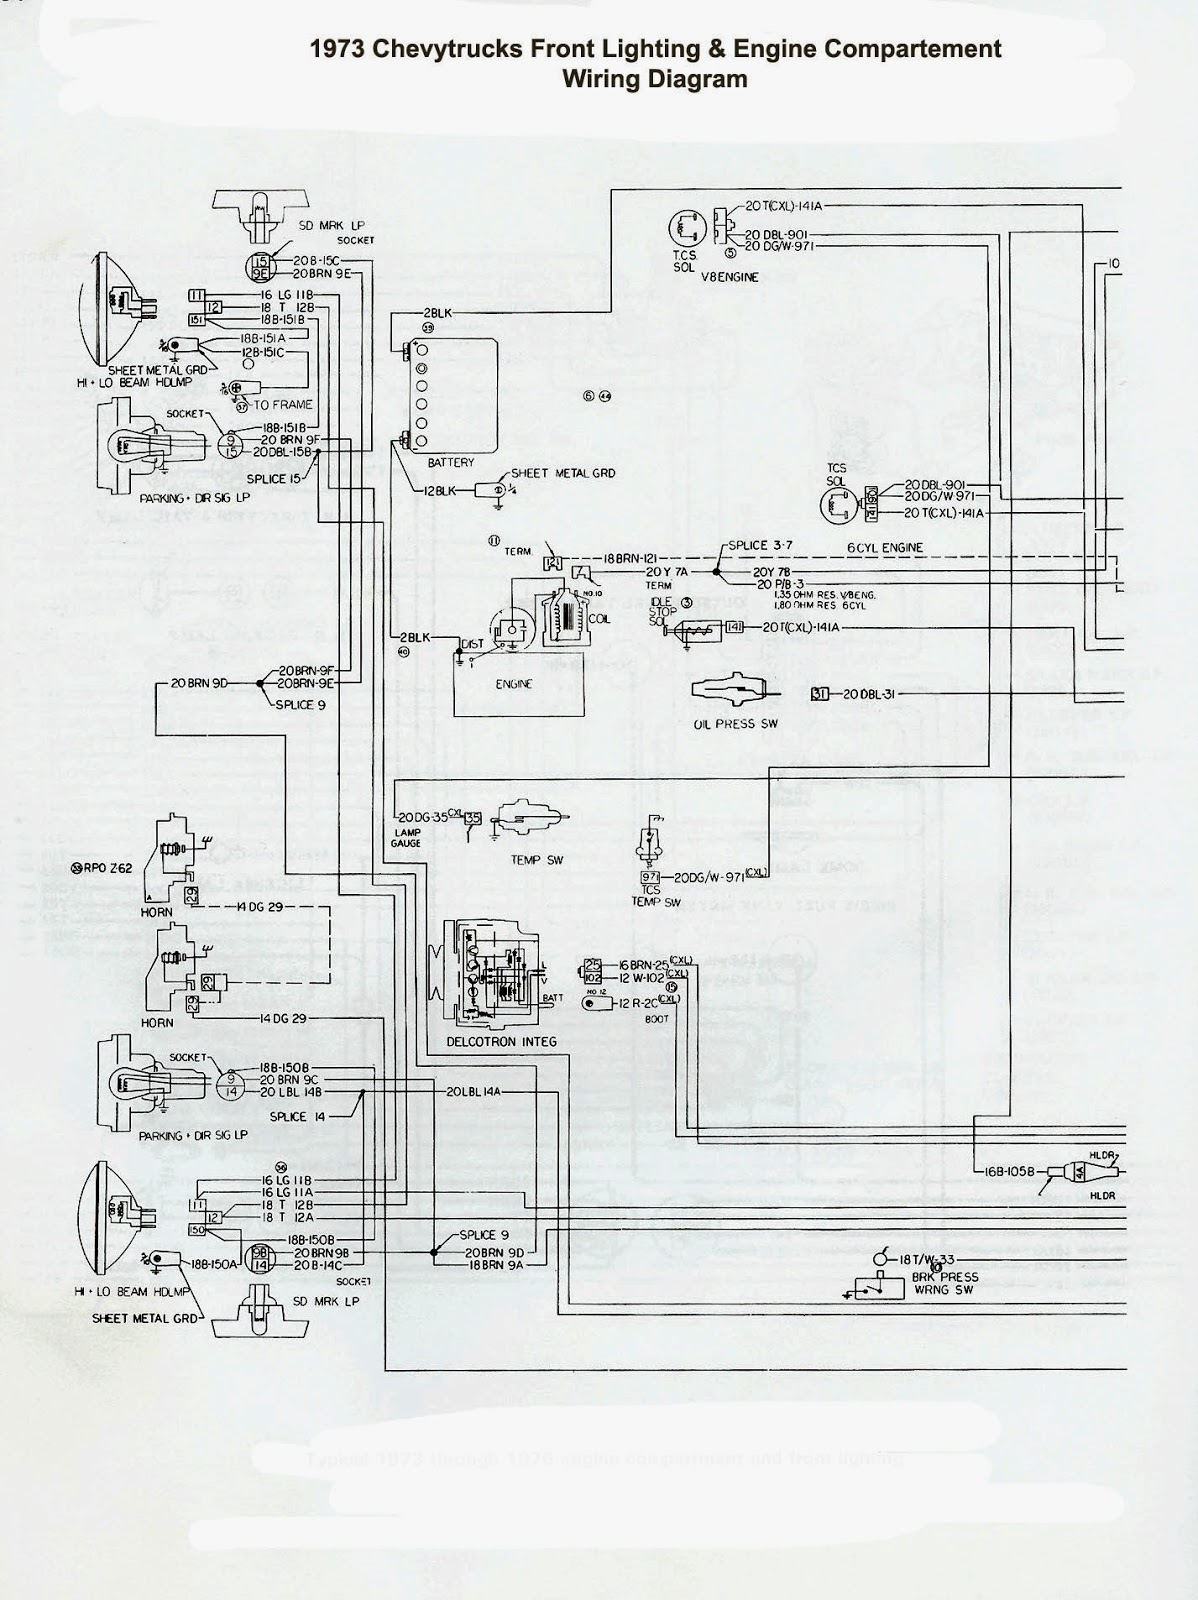 chevytruks.+engine+n+frontlight73 76_eng_frt_light+copy electrical winding wiring diagrams 1978 chevy truck wiring diagram at reclaimingppi.co